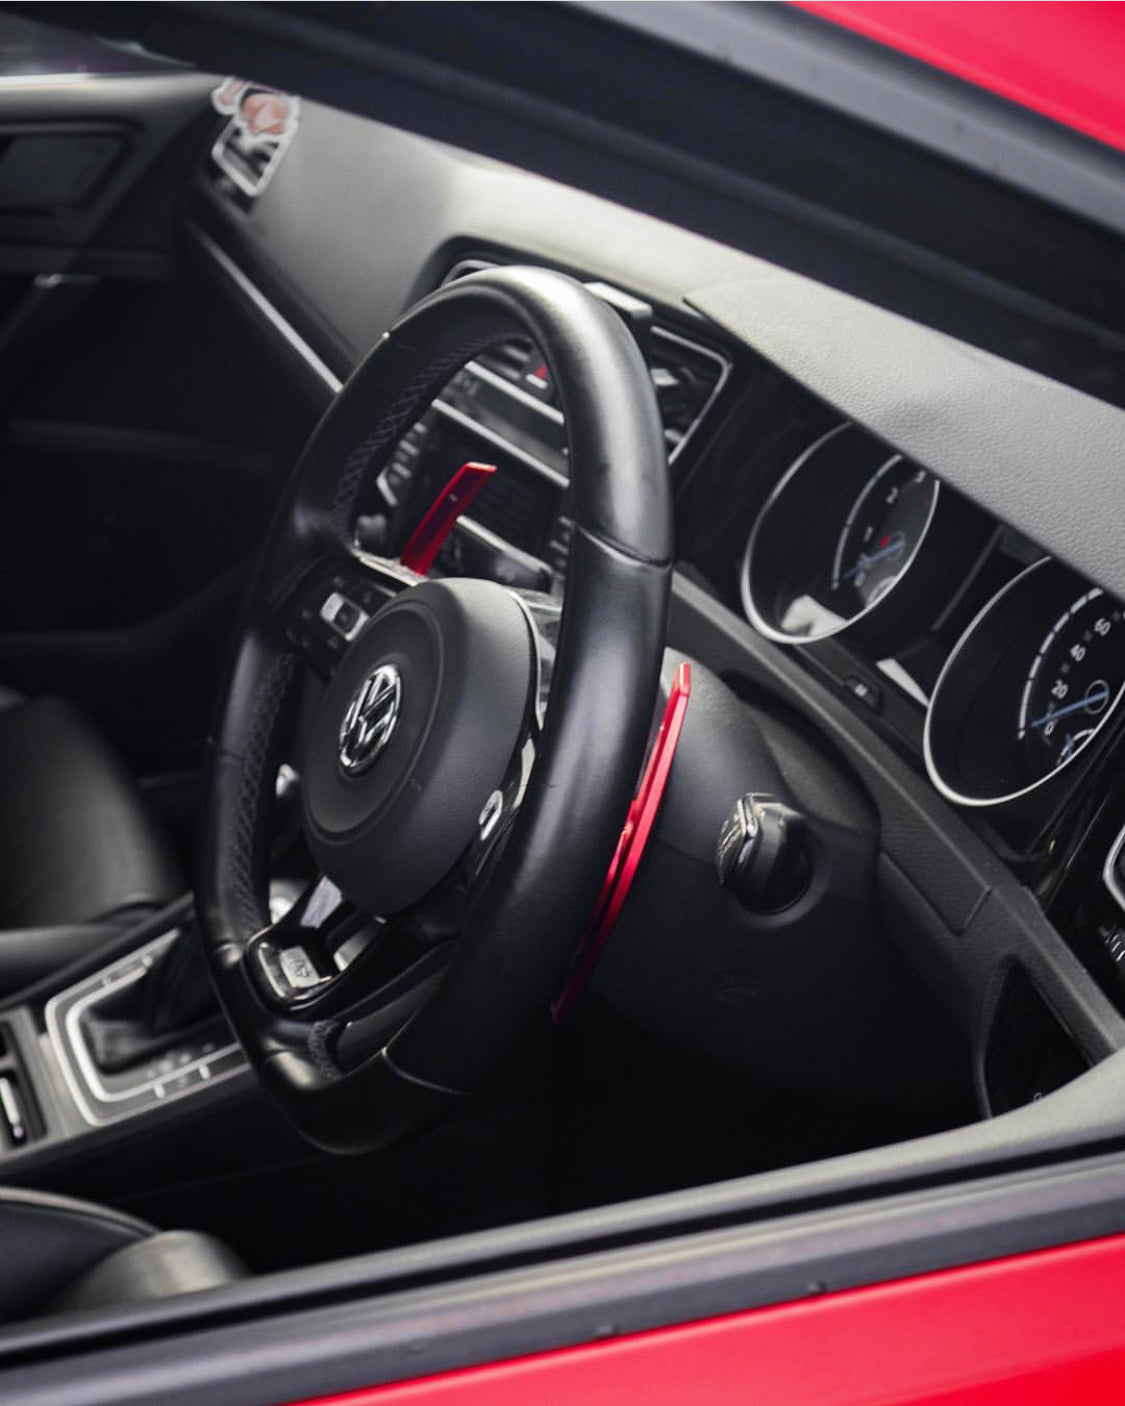 MODE Shift+ DSG Paddle Shifter (OEM Fit) suit VW Golf R/GTI (MK7/MK7.5/MK8) & VW Polo GTI (6R/AW) & R-Line Models